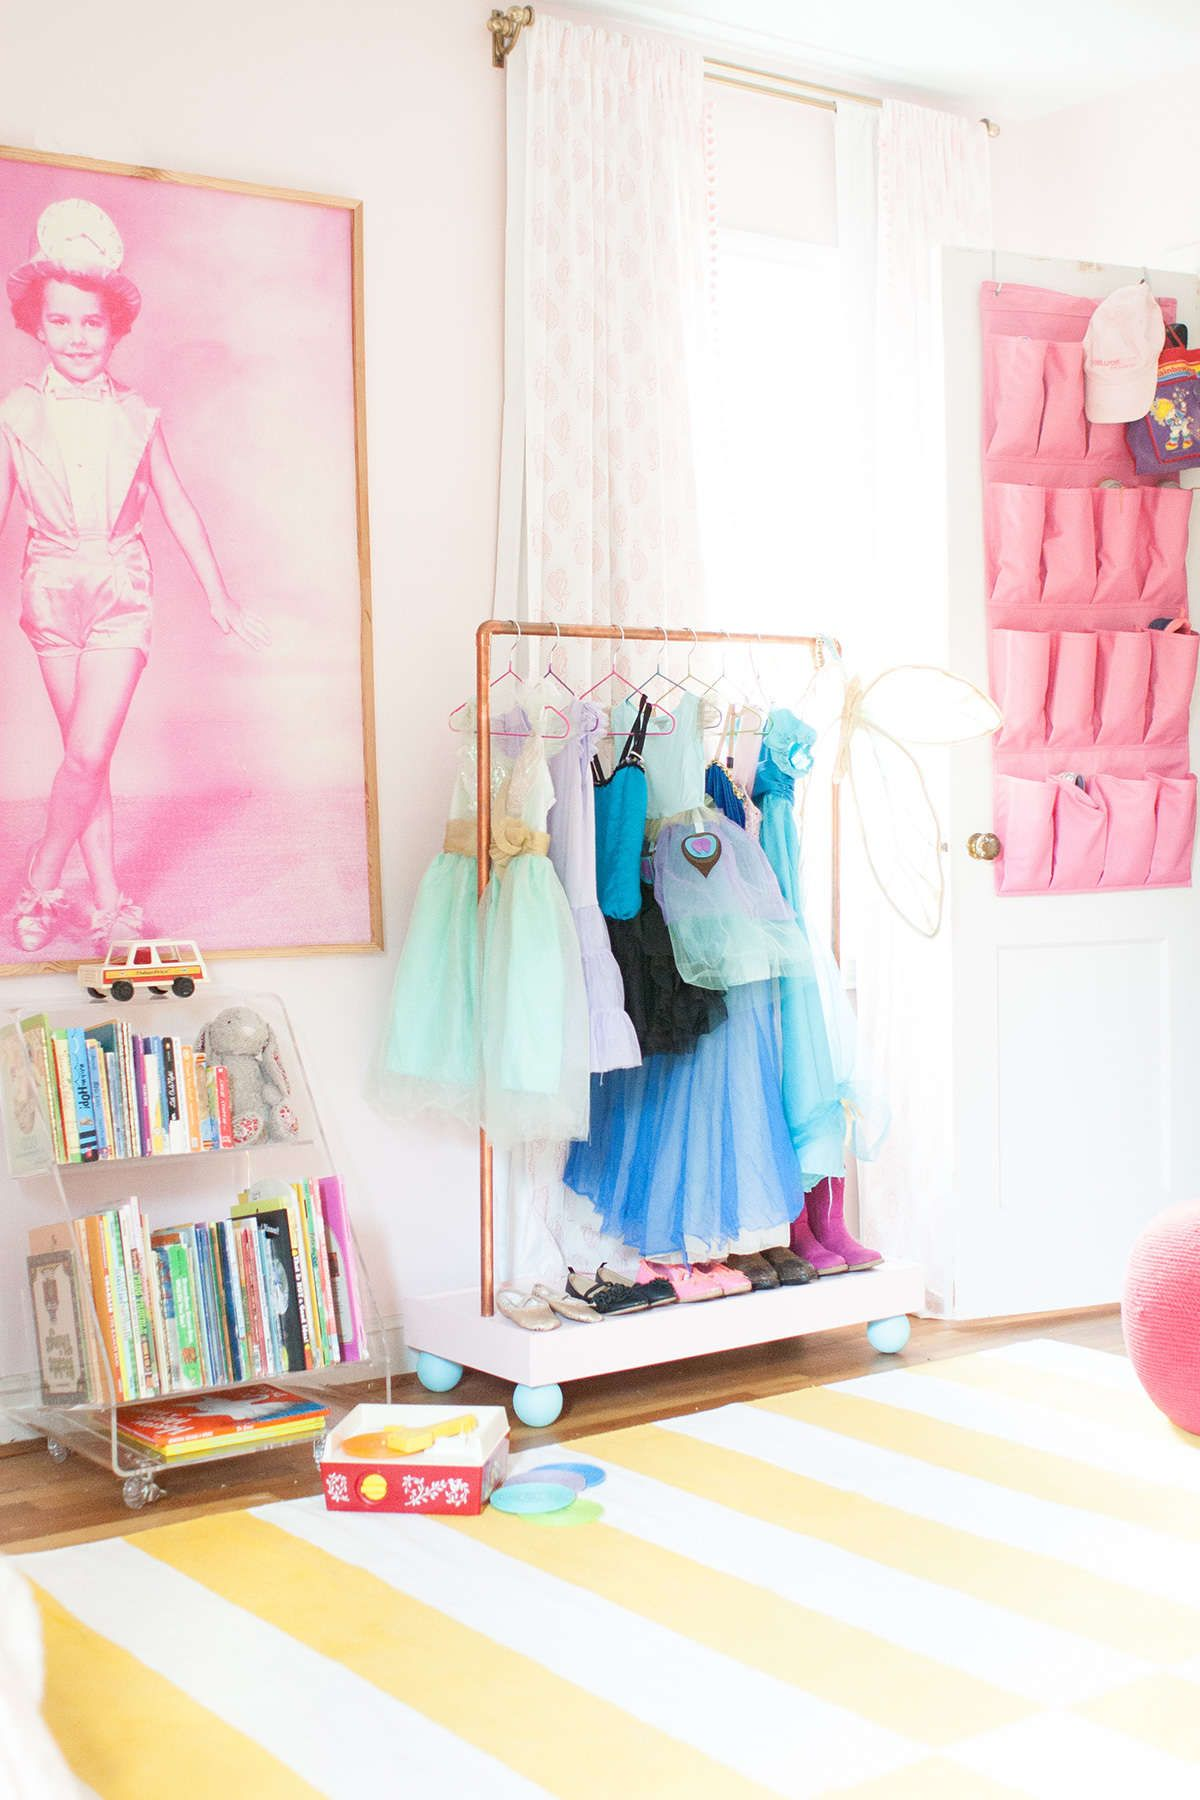 DIY Clothes Rack | Kids clothing, Diy dress and Hero costumes